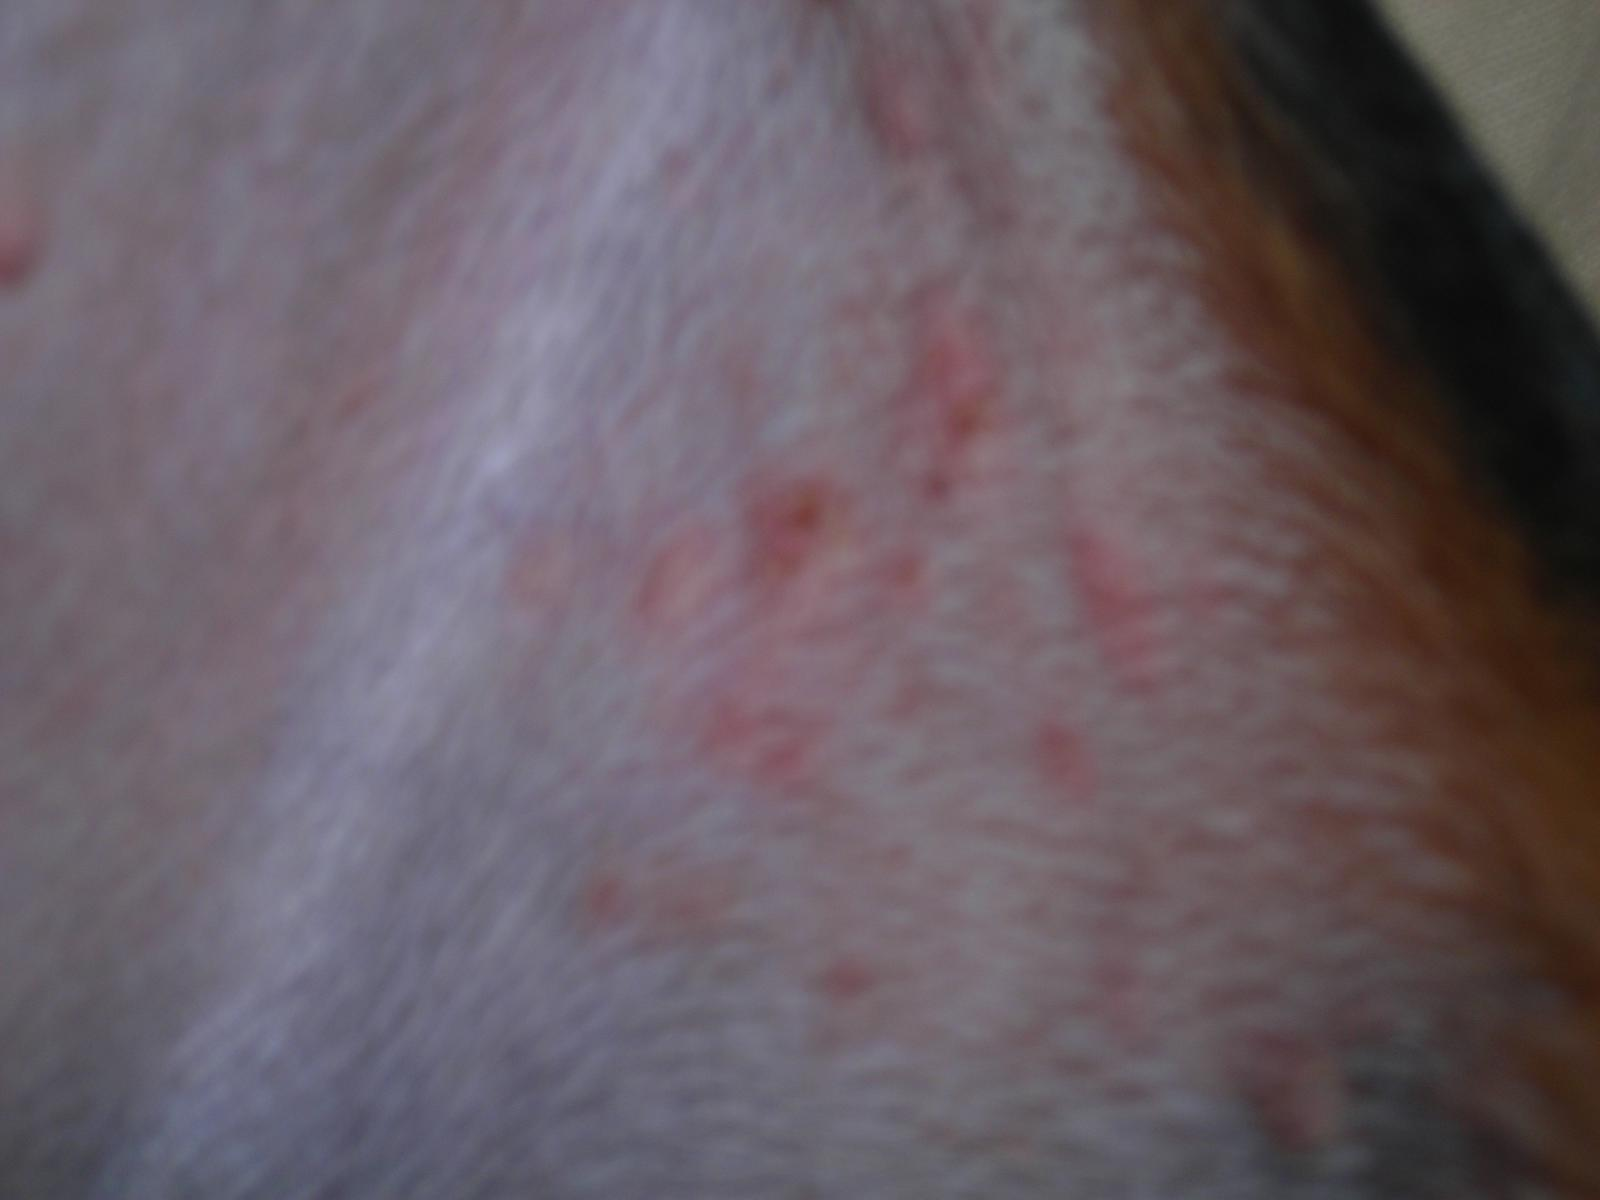 Dog Skin Rashes Skin Rashes In Children On Face In Adults On Hands On ...